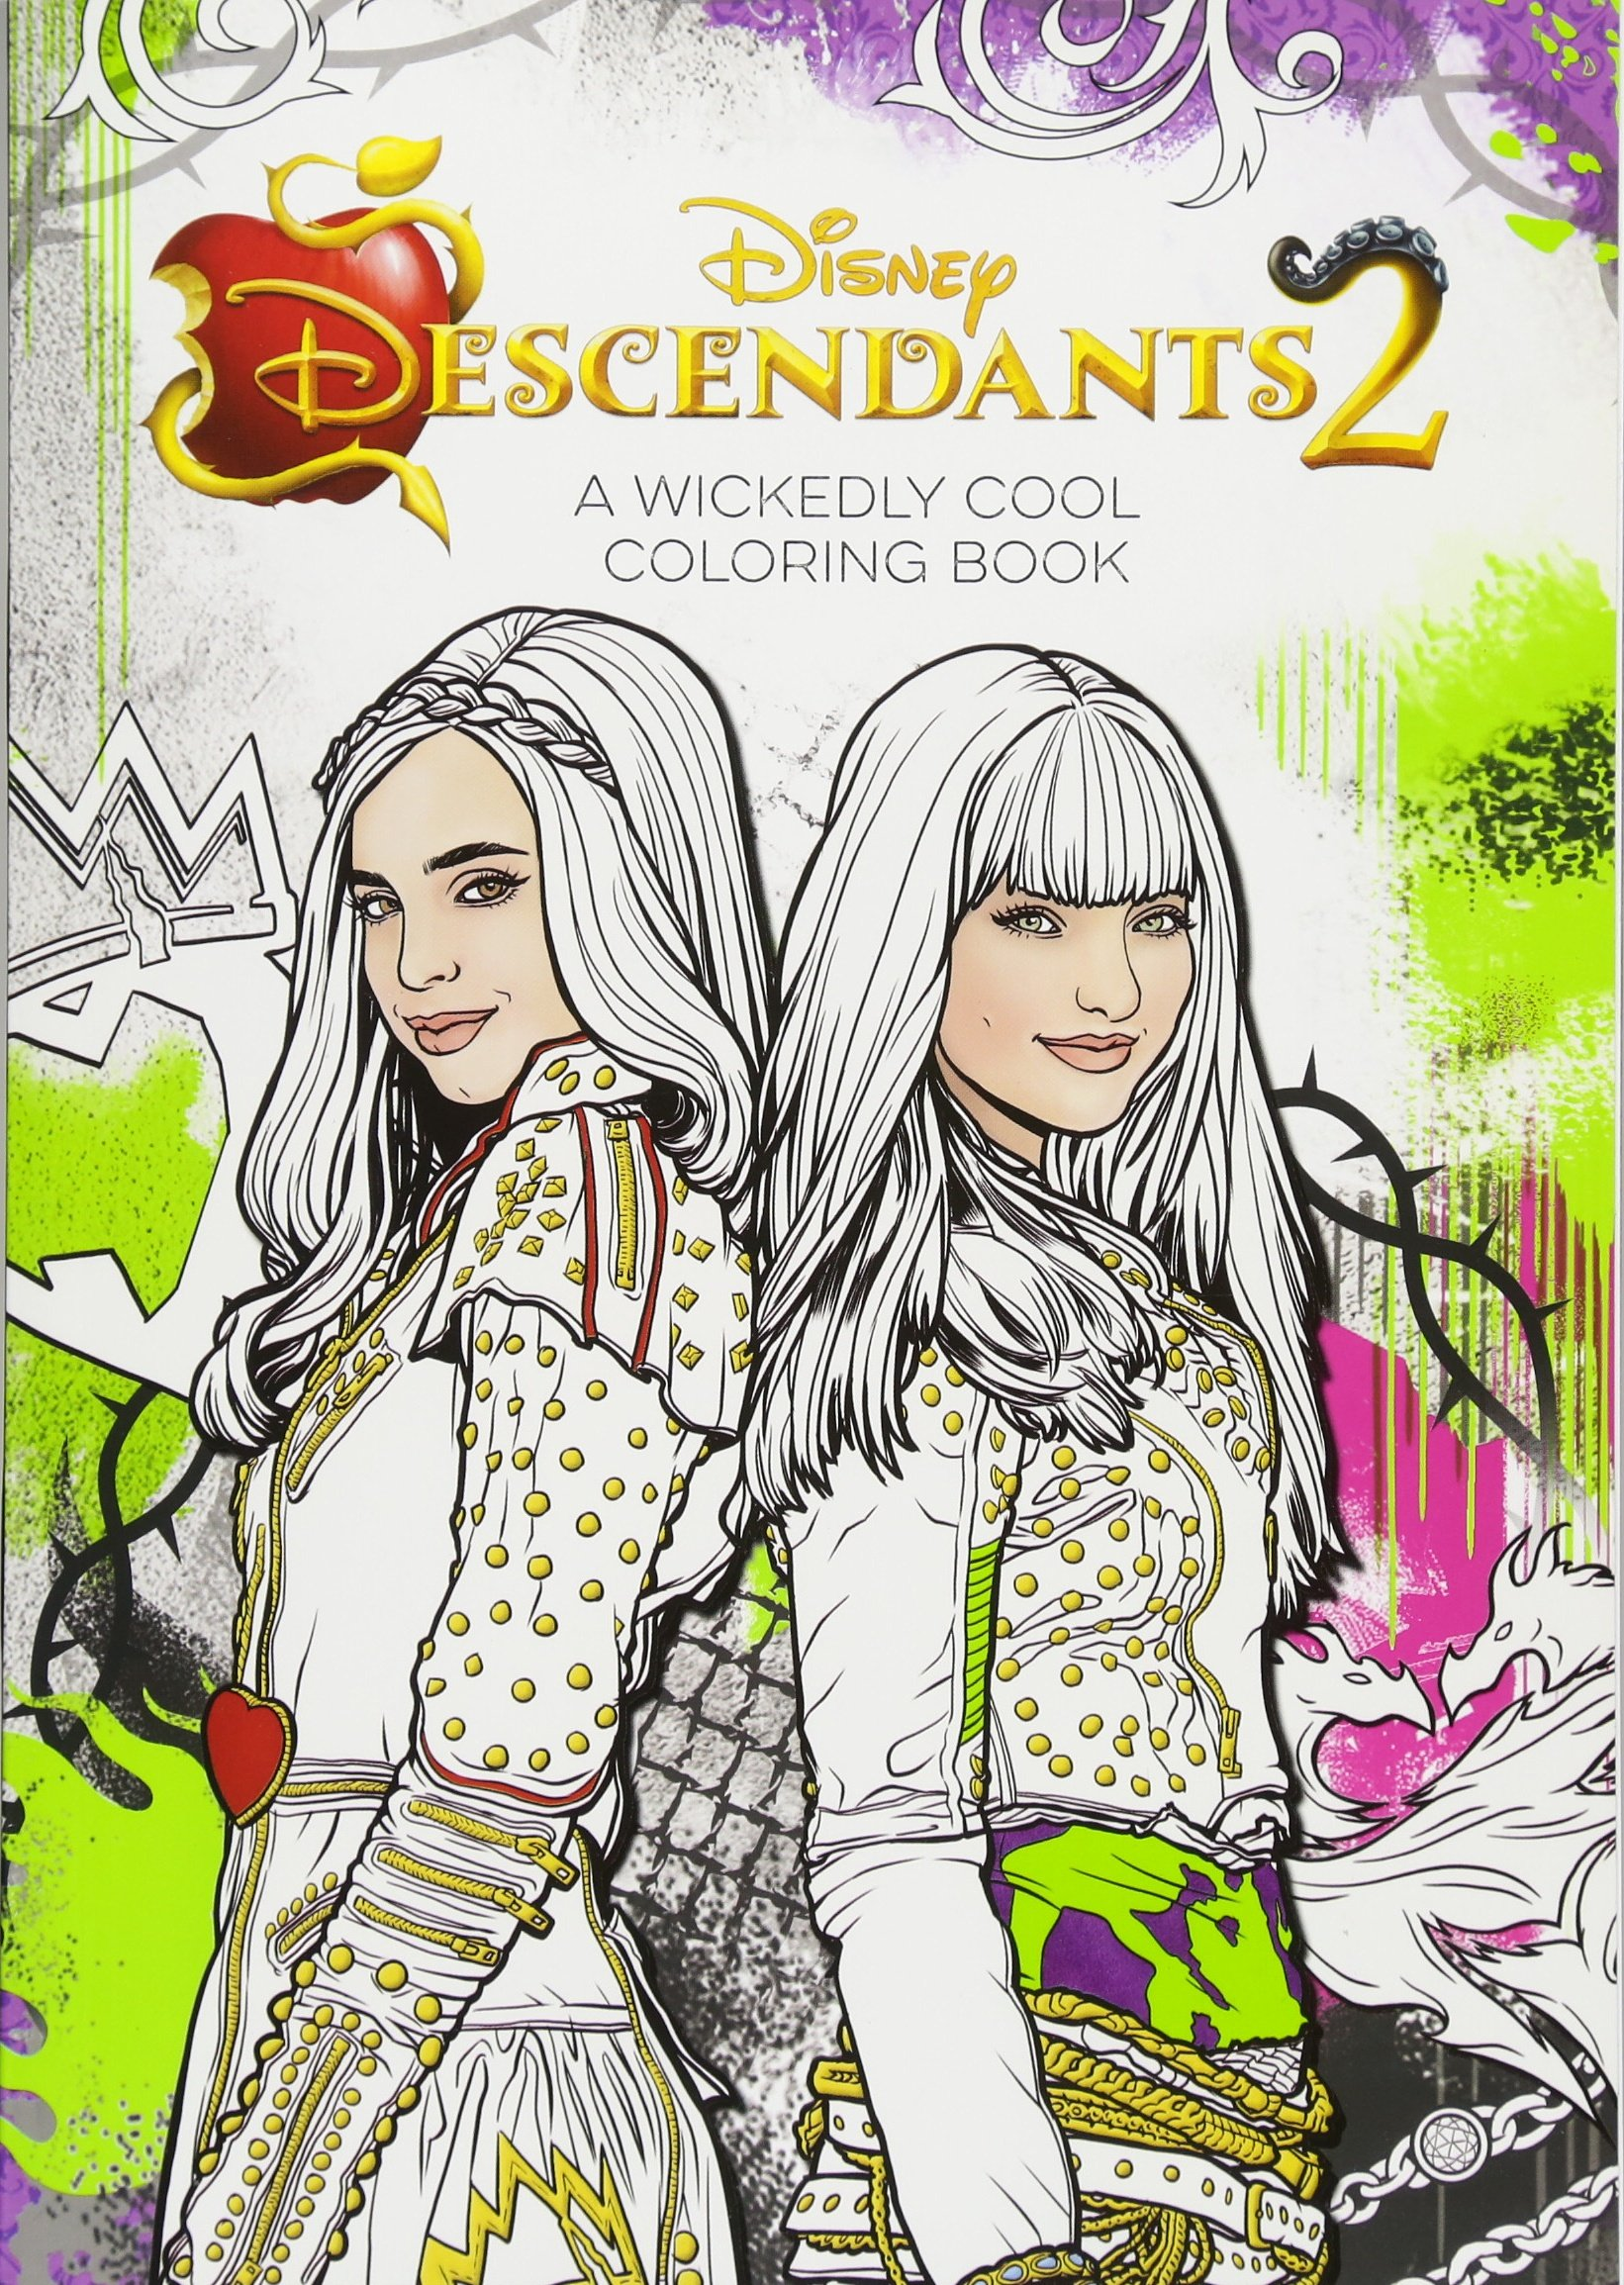 - Descendants 2 A Wickedly Cool Coloring Book (Art Of Coloring